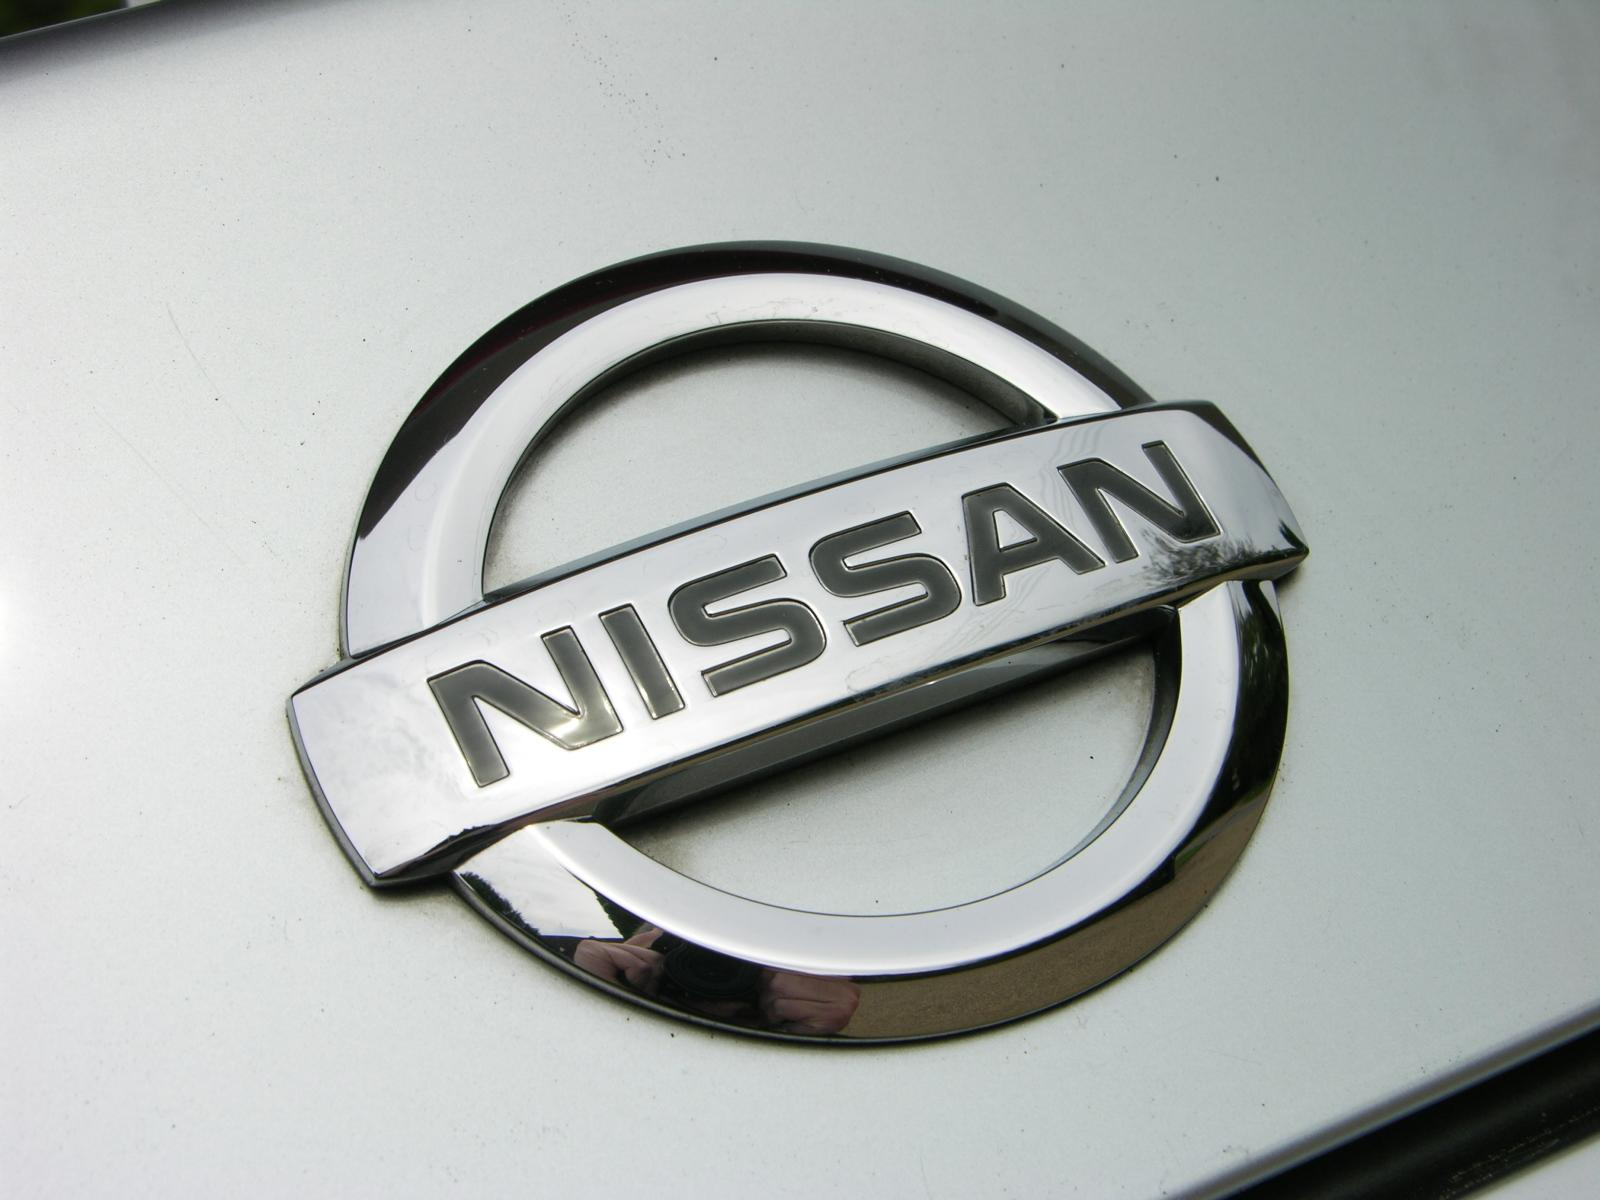 nissan airbag recall